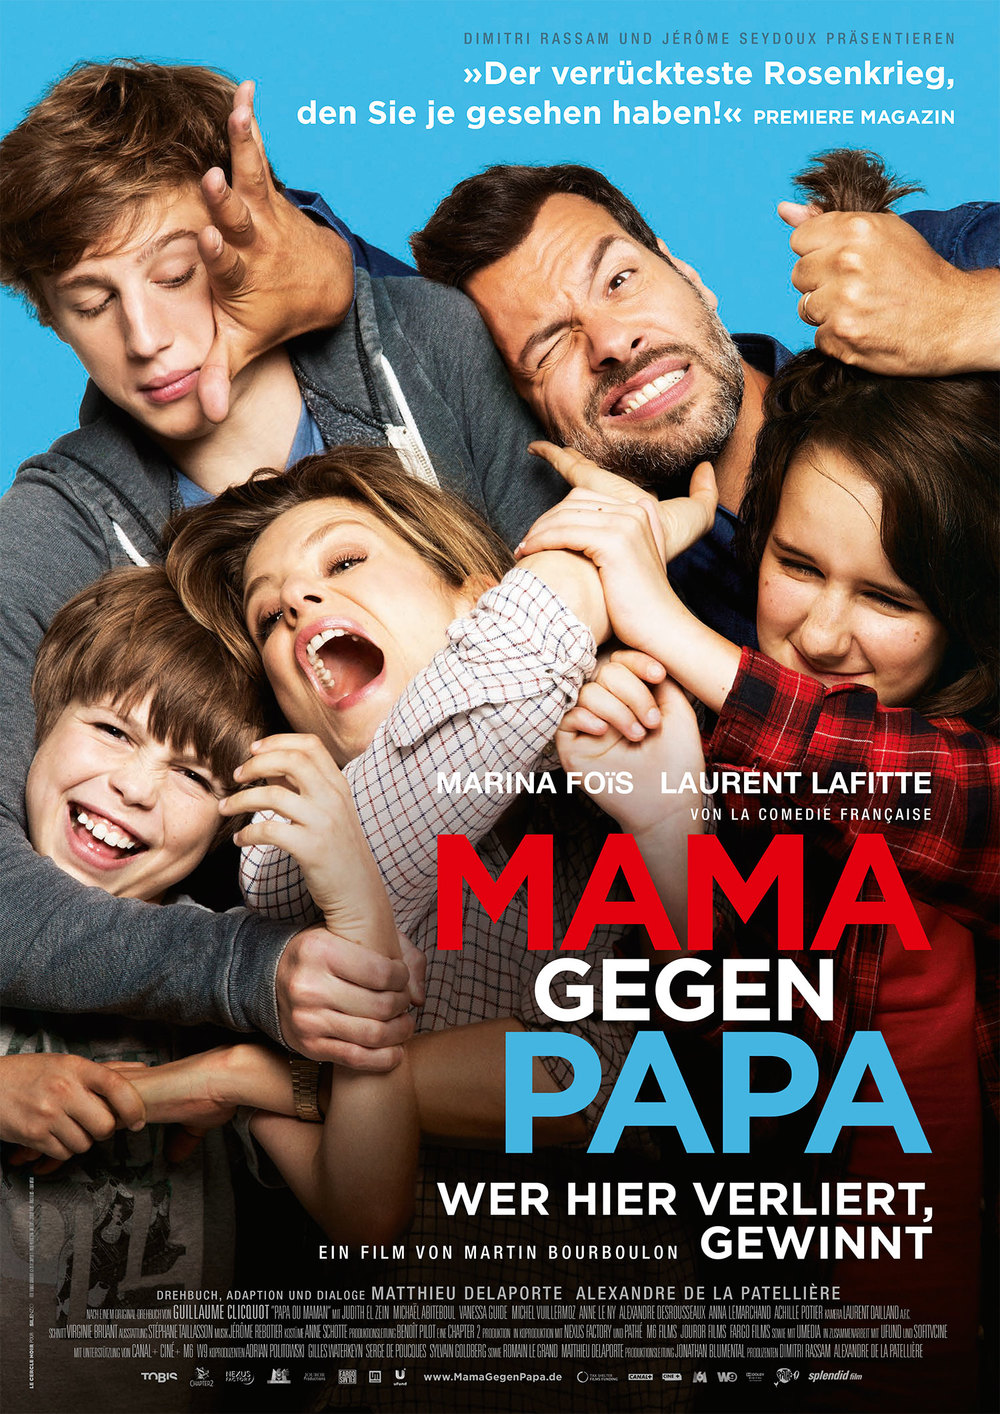 "Tobis<a href=""/mama-gegen-papa"">→</a><strong>Adaption</strong>"